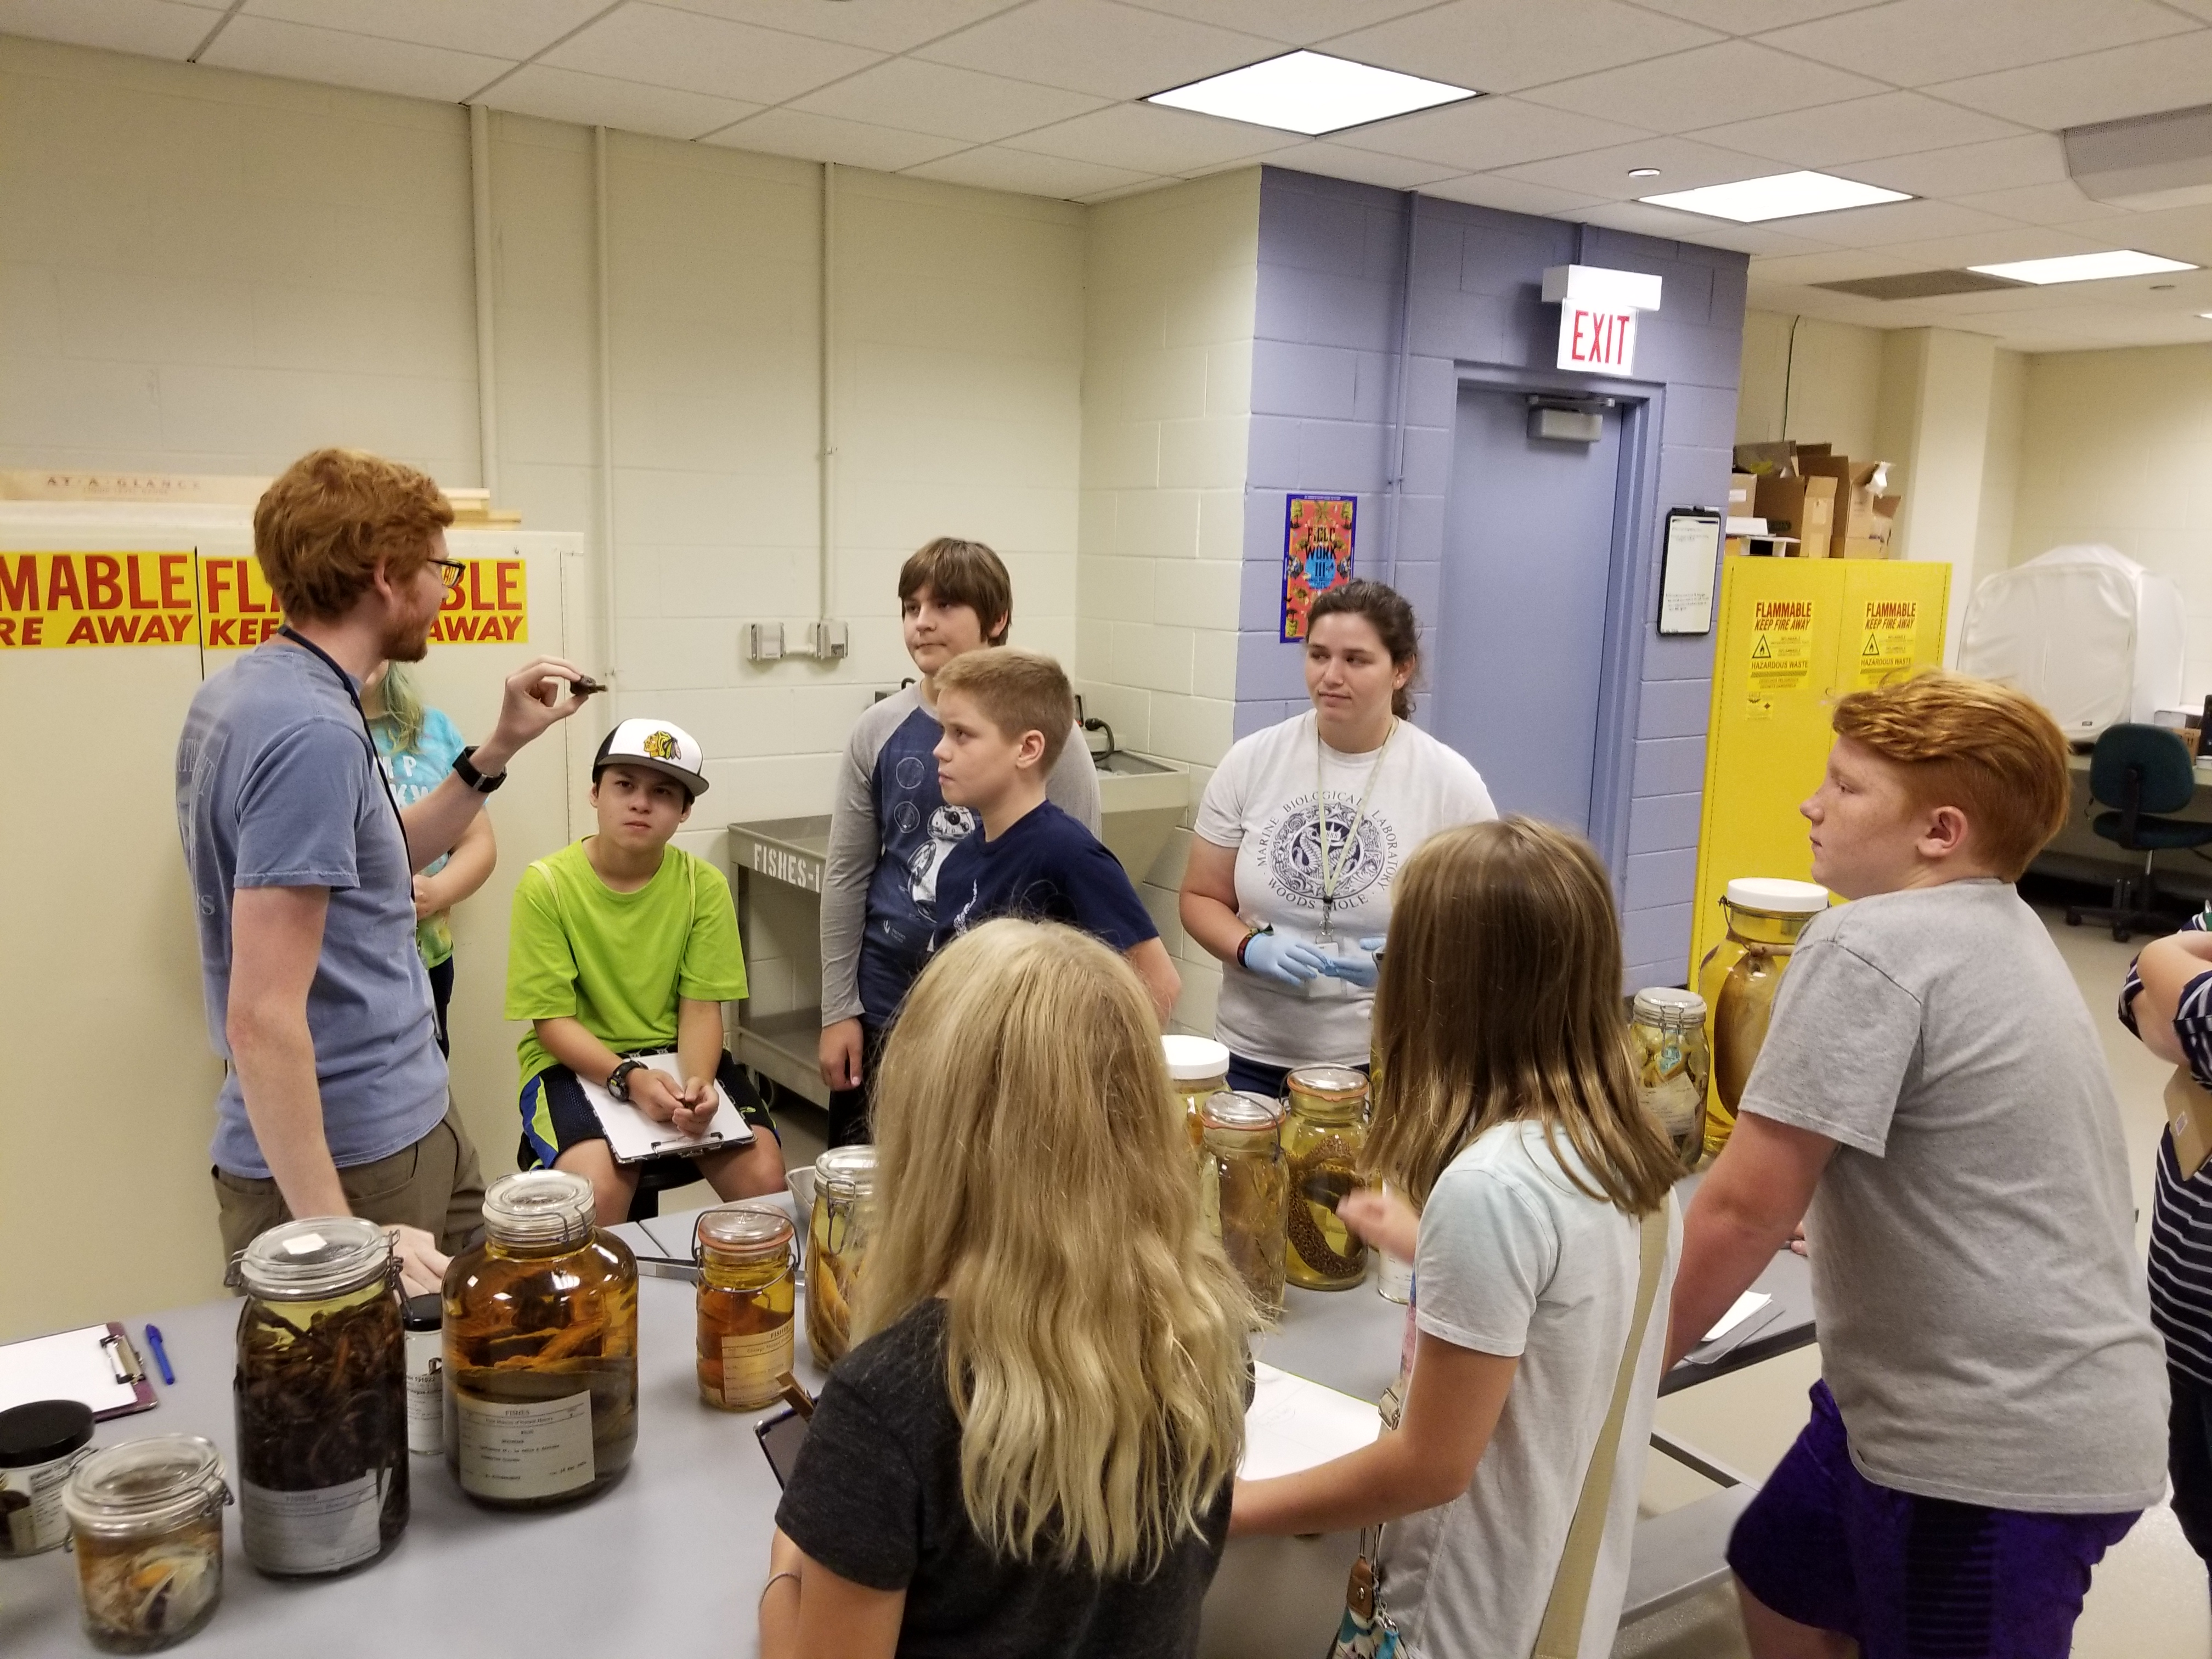 A group of students gather around an educator holding a small specimen. Jars on a table hold various specimens in liquid.